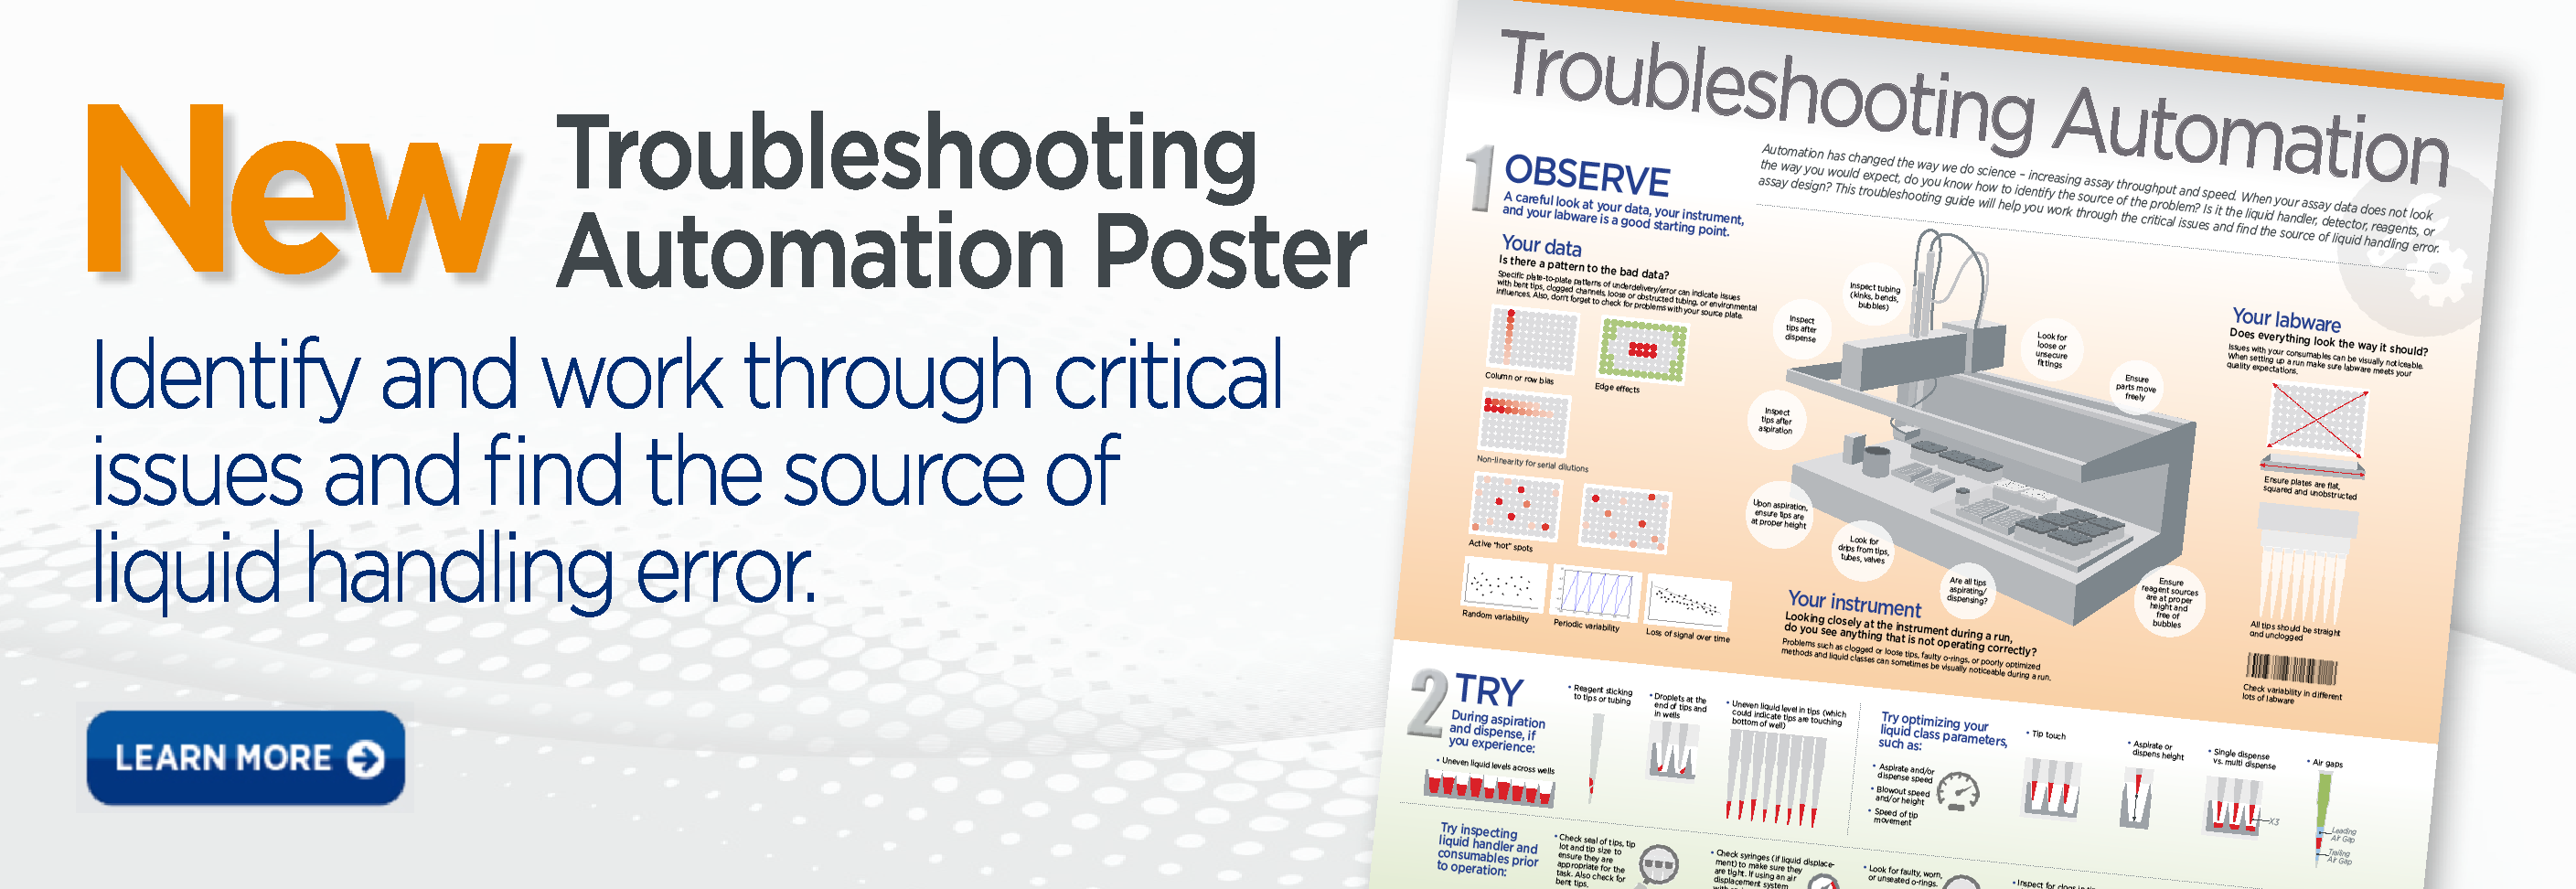 New Troubleshooting Automation Poster